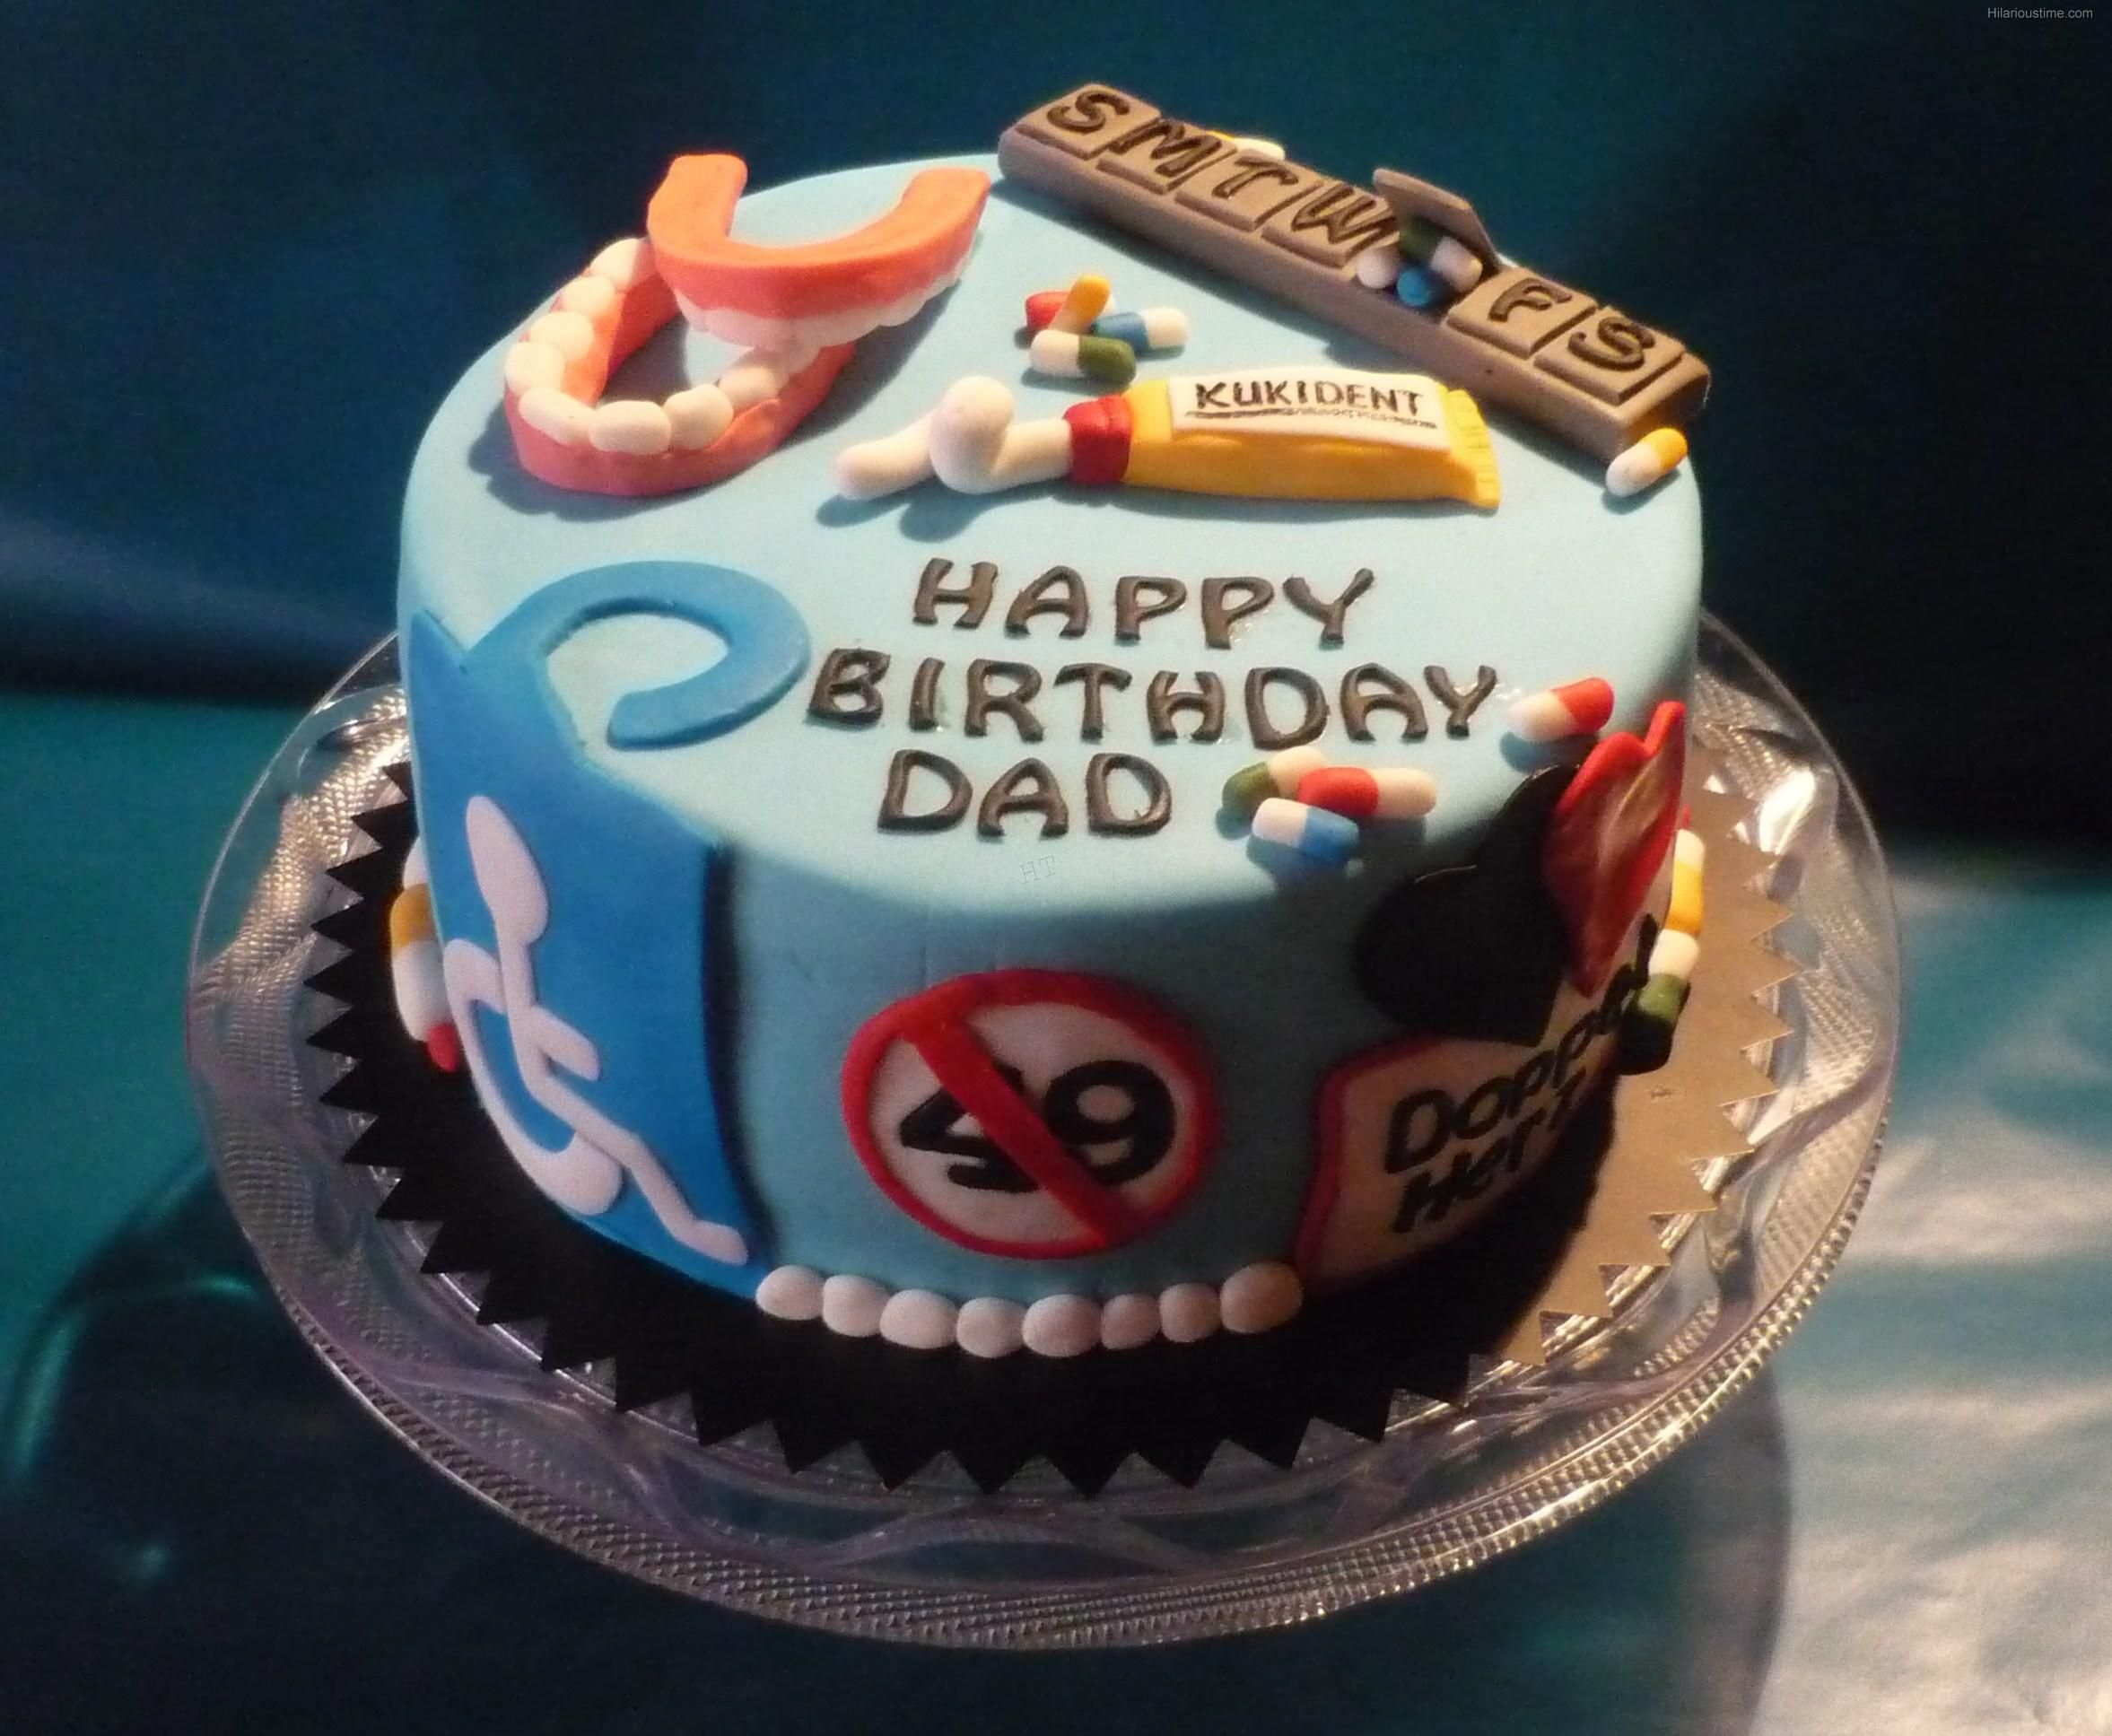 Birthday Cake Funny 15 Hilarious Cakes 001 Holidays Pinterest Birthday Cake Cake